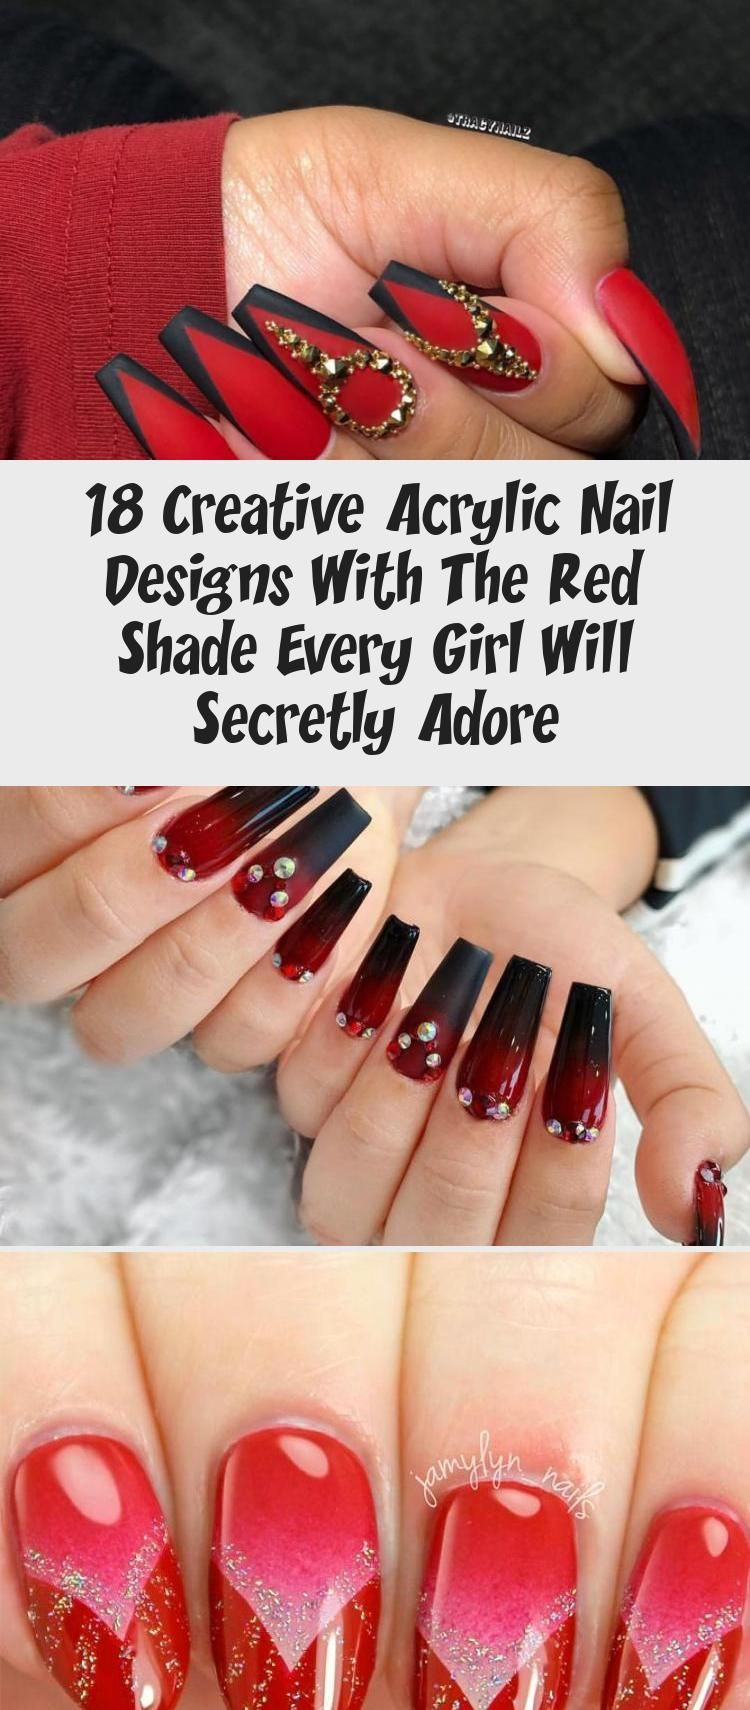 Photo of 18 Creative Acrylic Nail Designs With The Red Shade Every Girl Will Secretly Adore